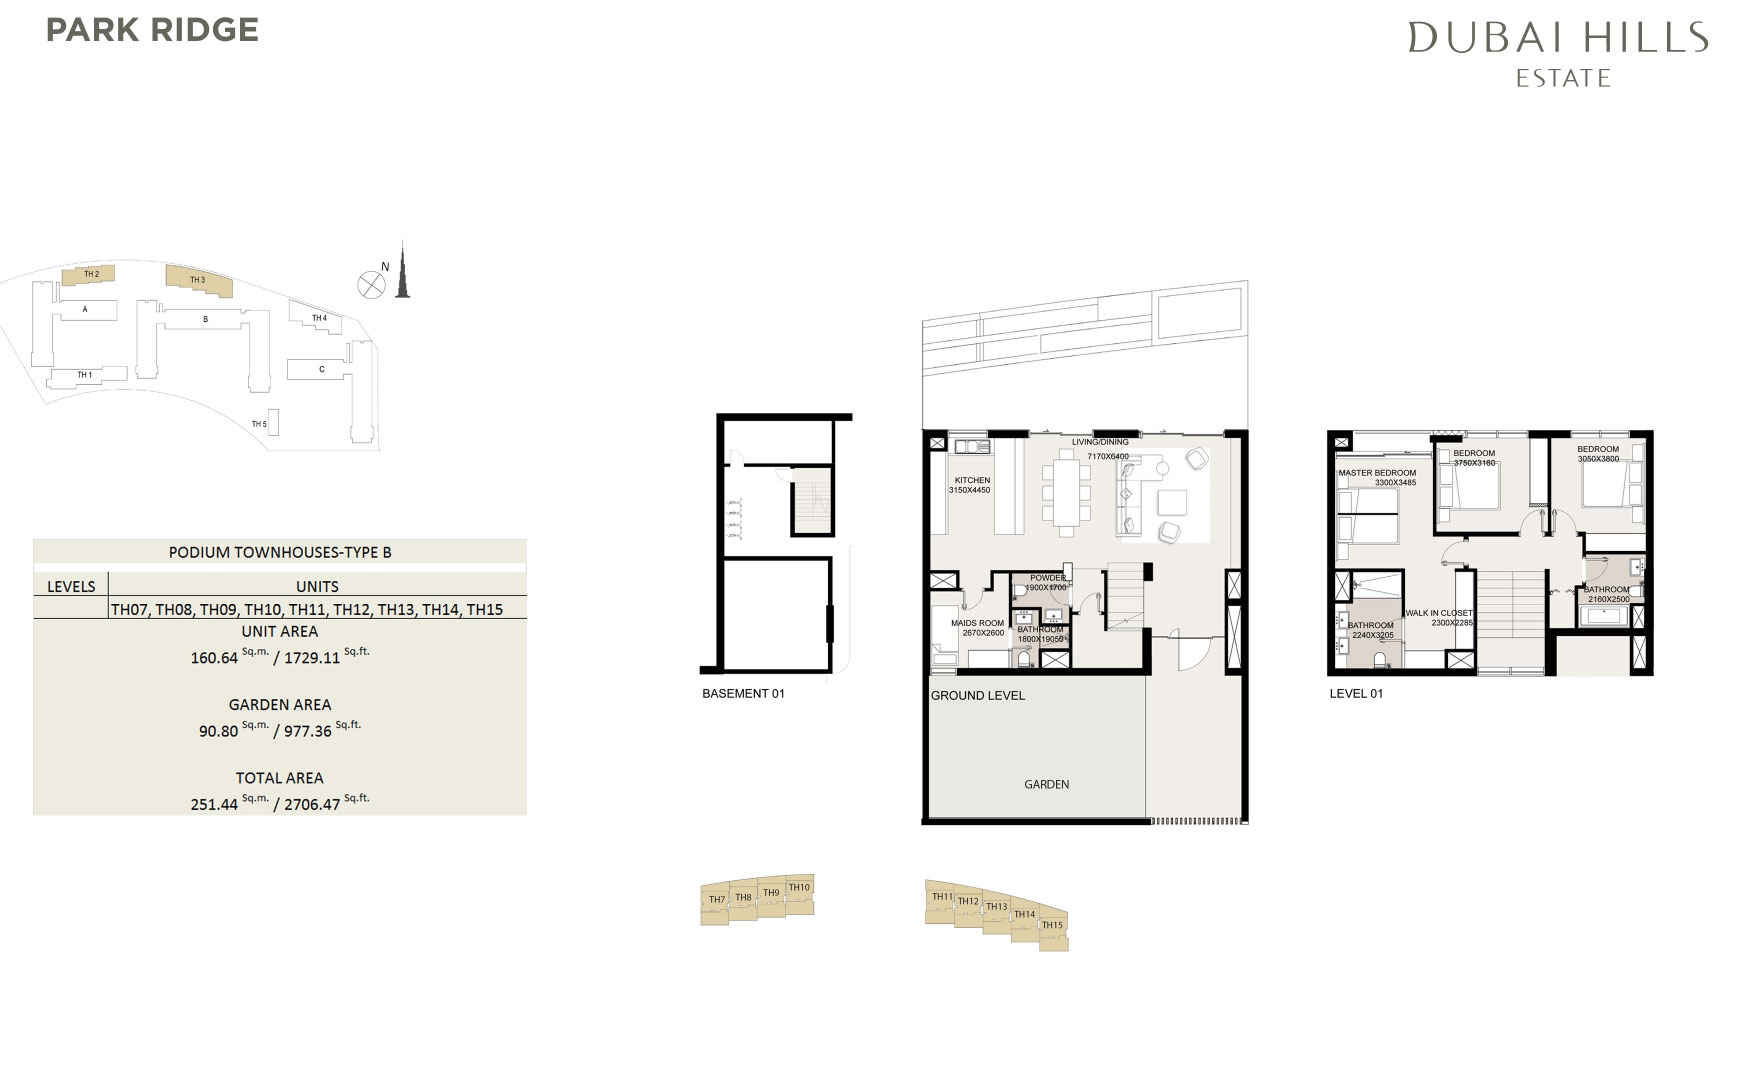 Podium Townhouses 2706 47sqft